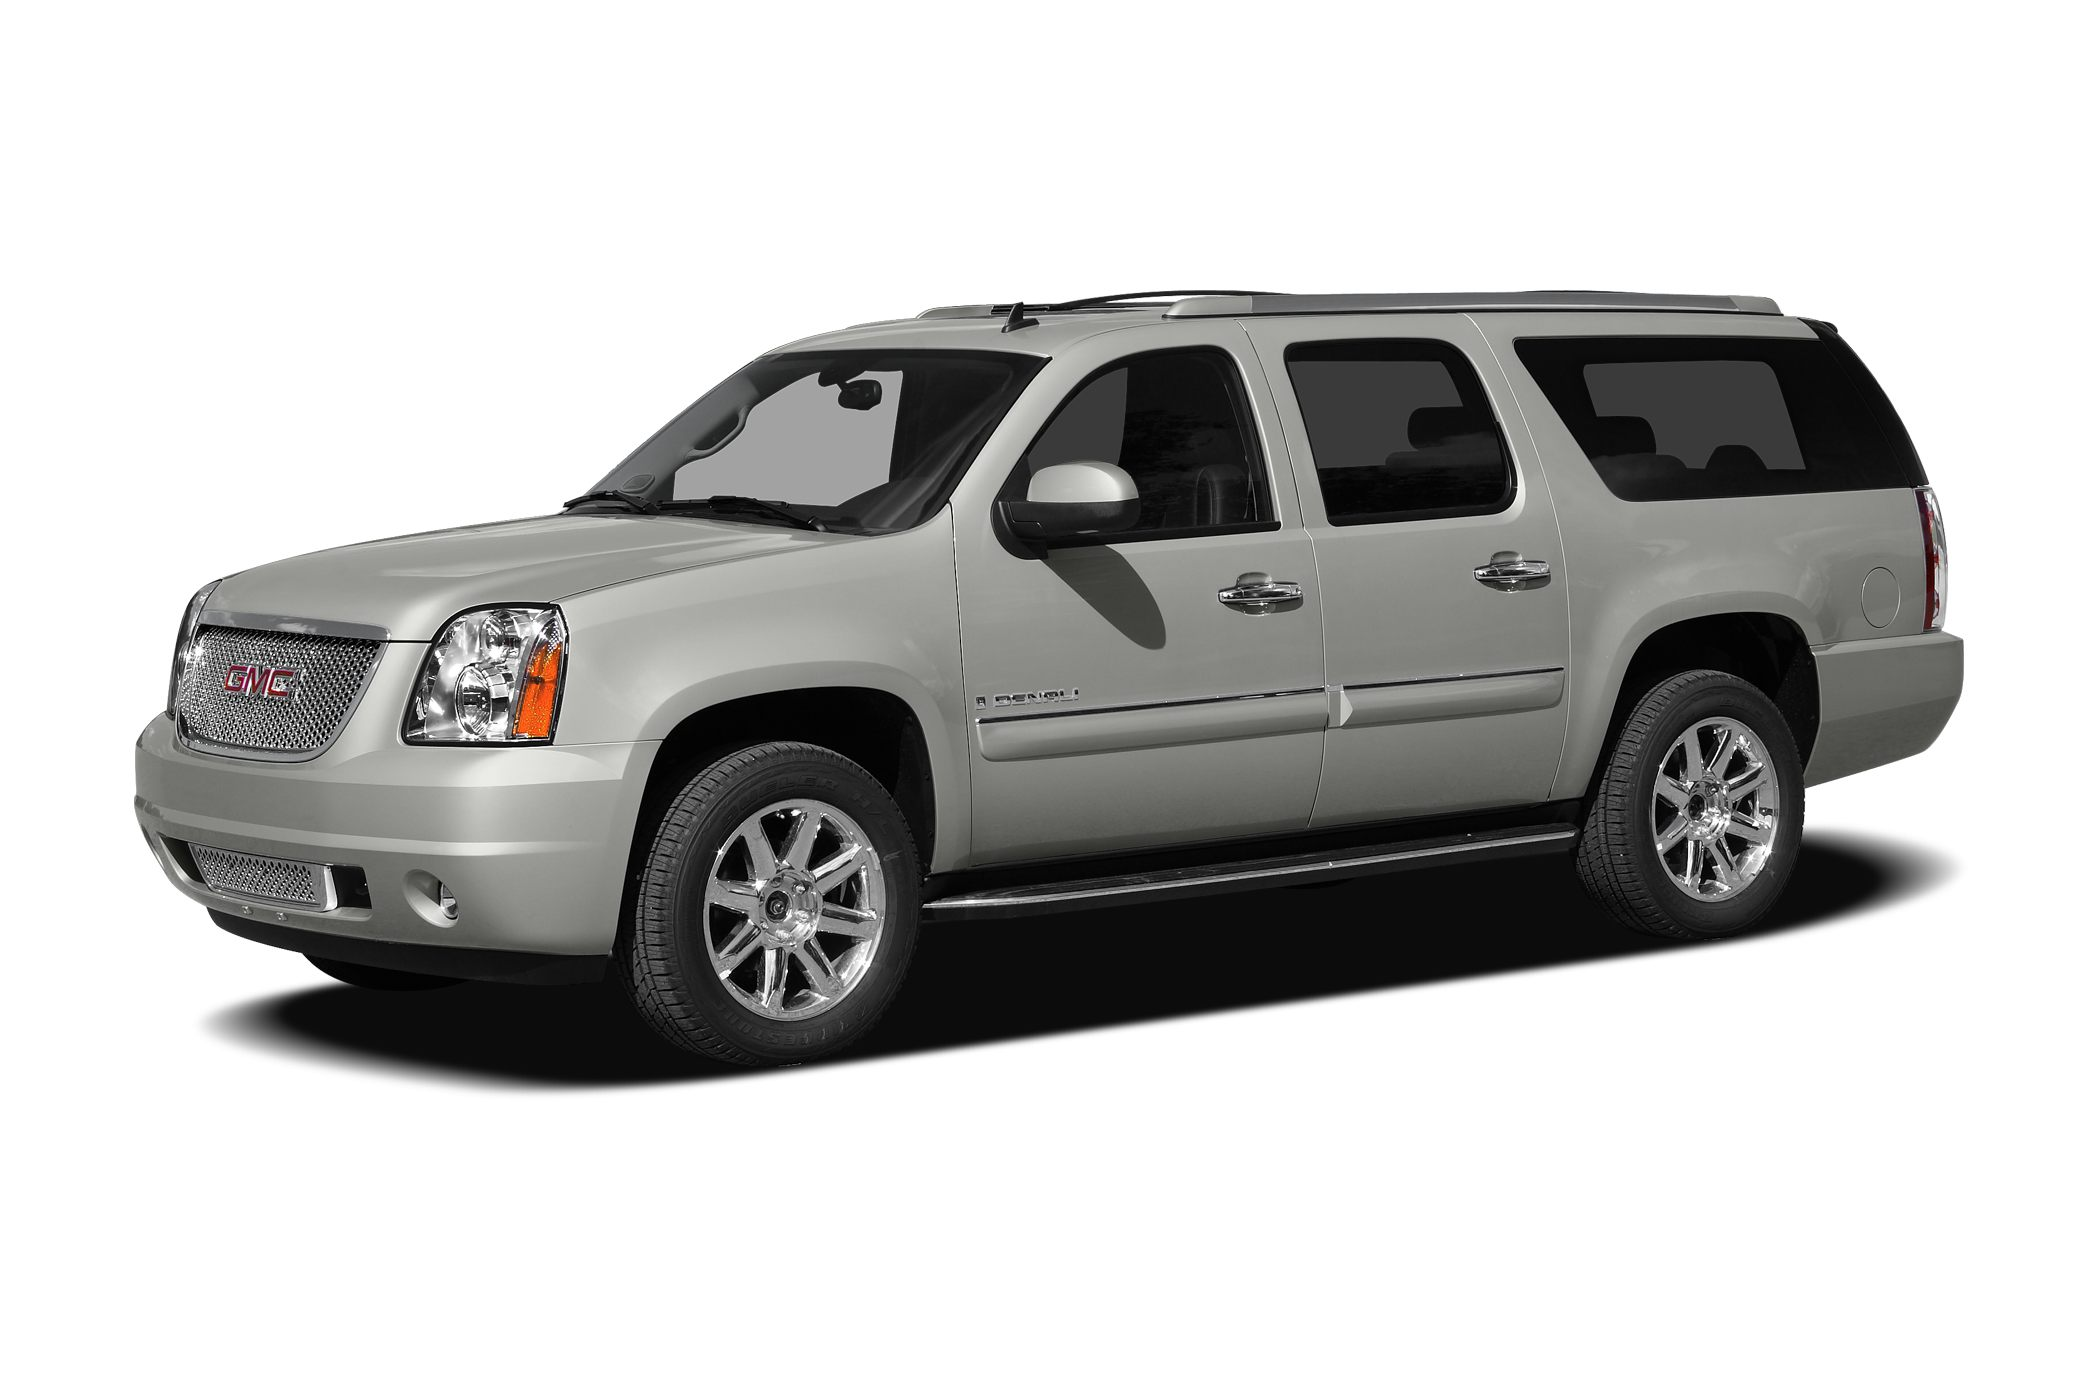 2008 GMC Yukon XL 1500 Denali Miles 176454Color Gray Stock 15X11B VIN 1GKFC66898J206705